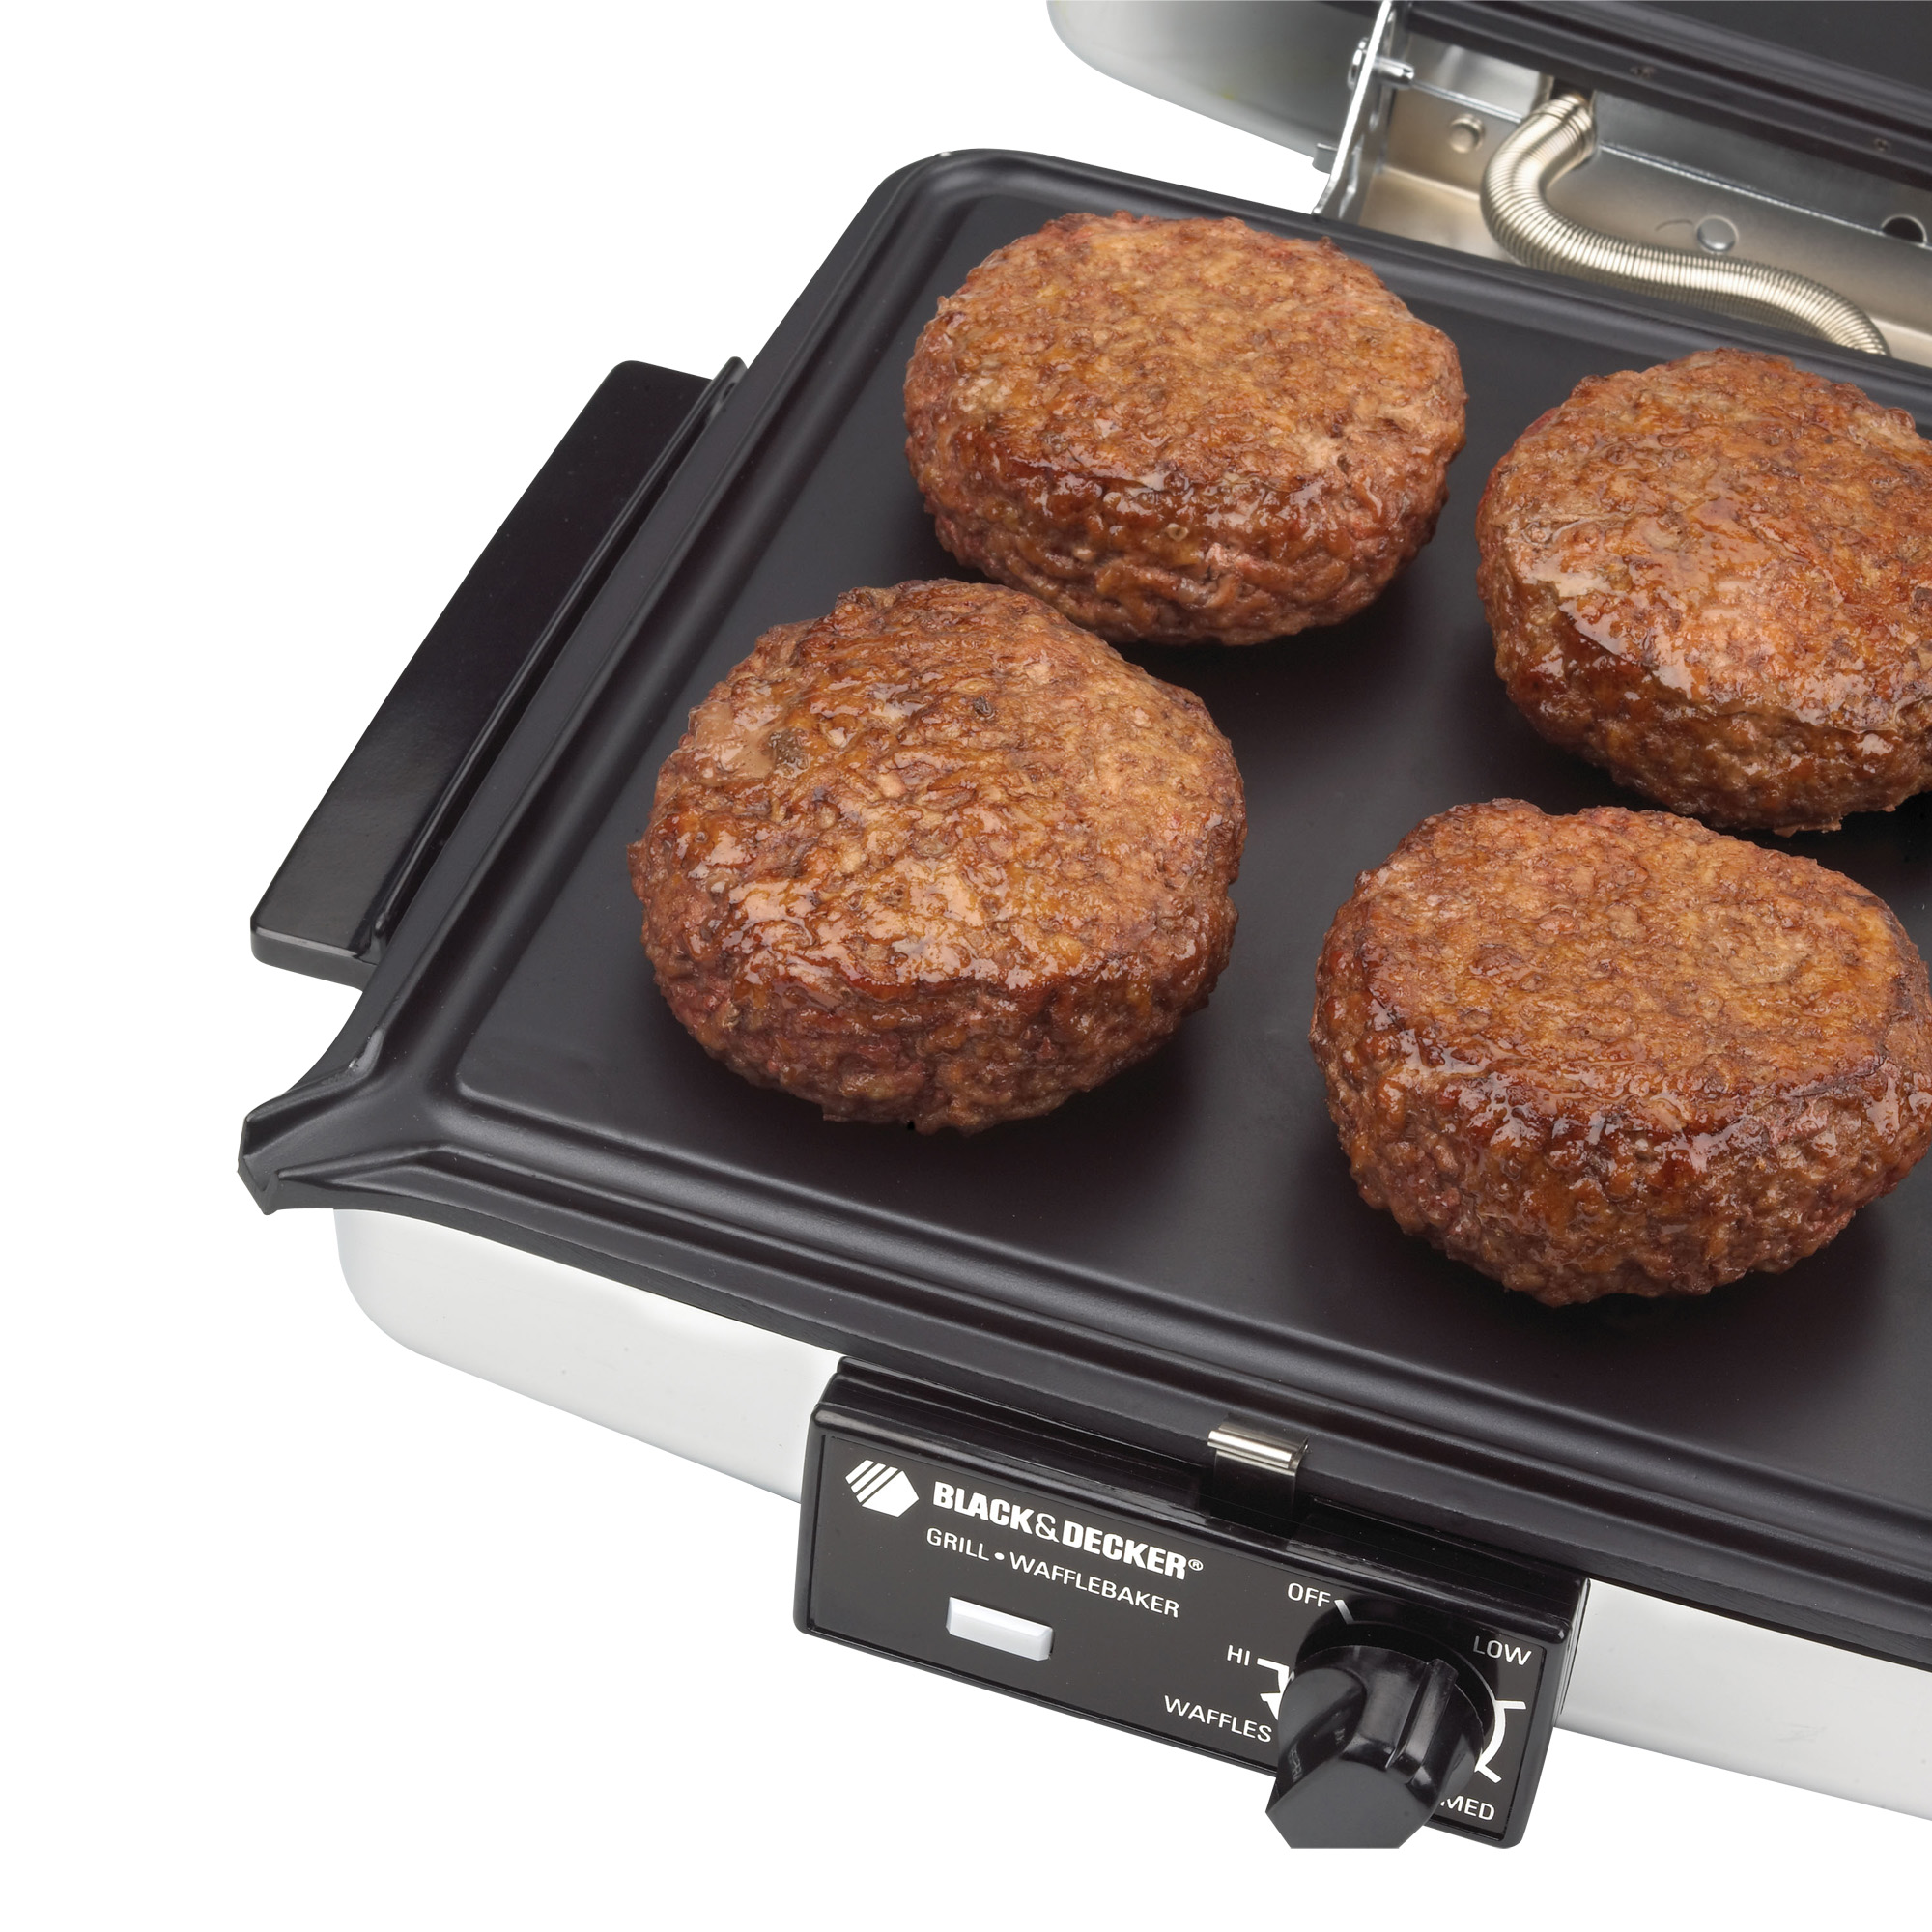 black and decker grill and waffle maker instructions